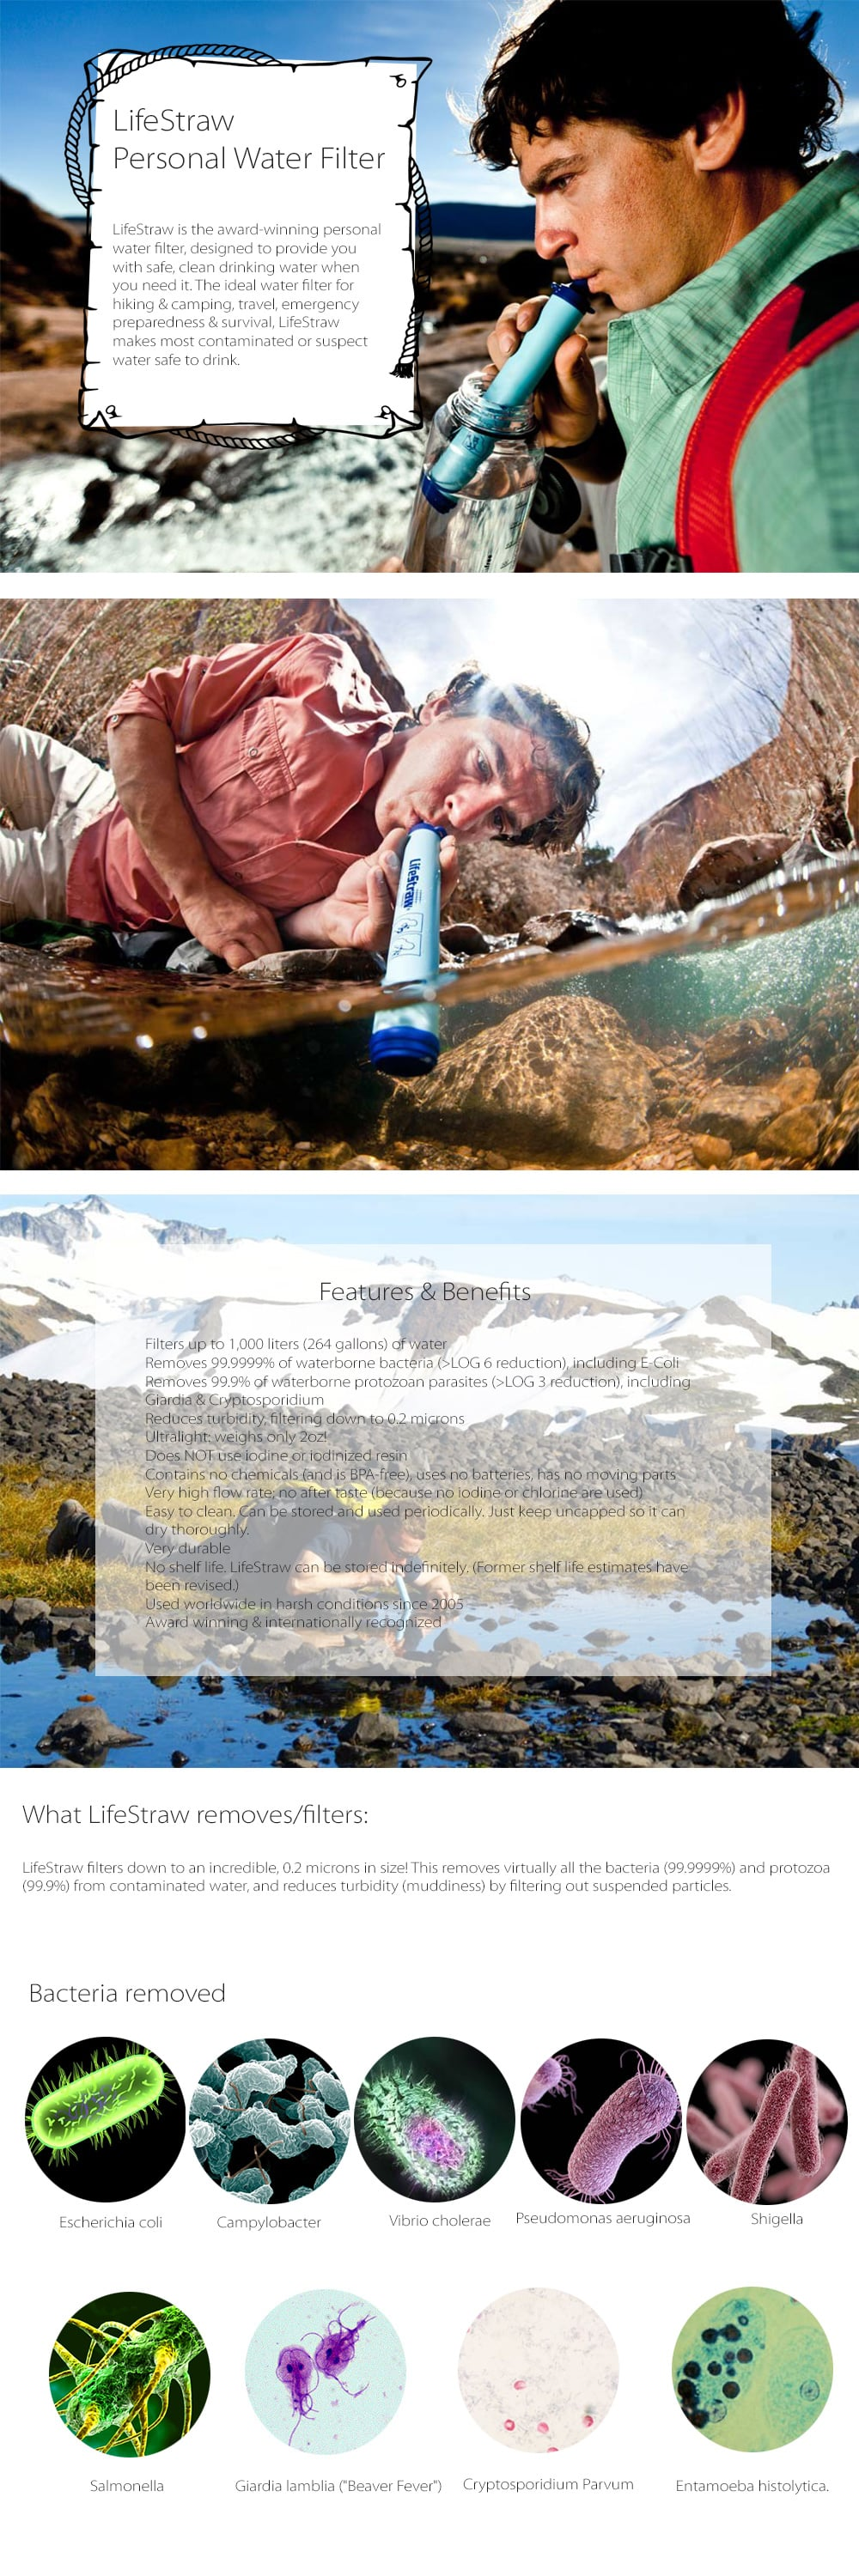 LifeStraw Personal Water Filter Designed To Provide You With Safe